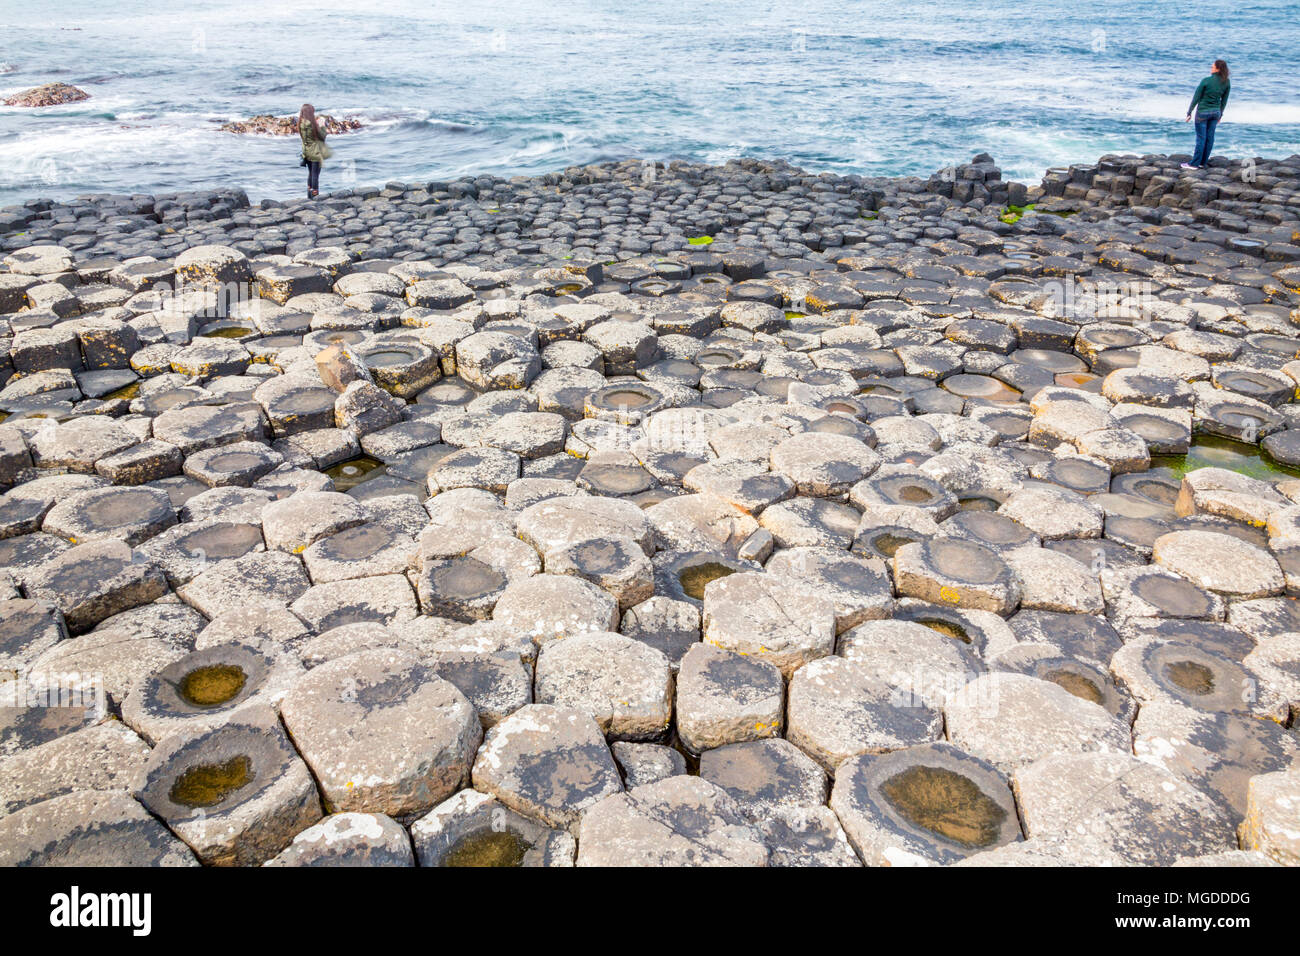 Antrim/N. Ireland - May 30, 2015: Giant's Causeway, a natural wonder produced by volcanic, hexagonal basalt rock flowing into the ocean . Antrim. - Stock Image